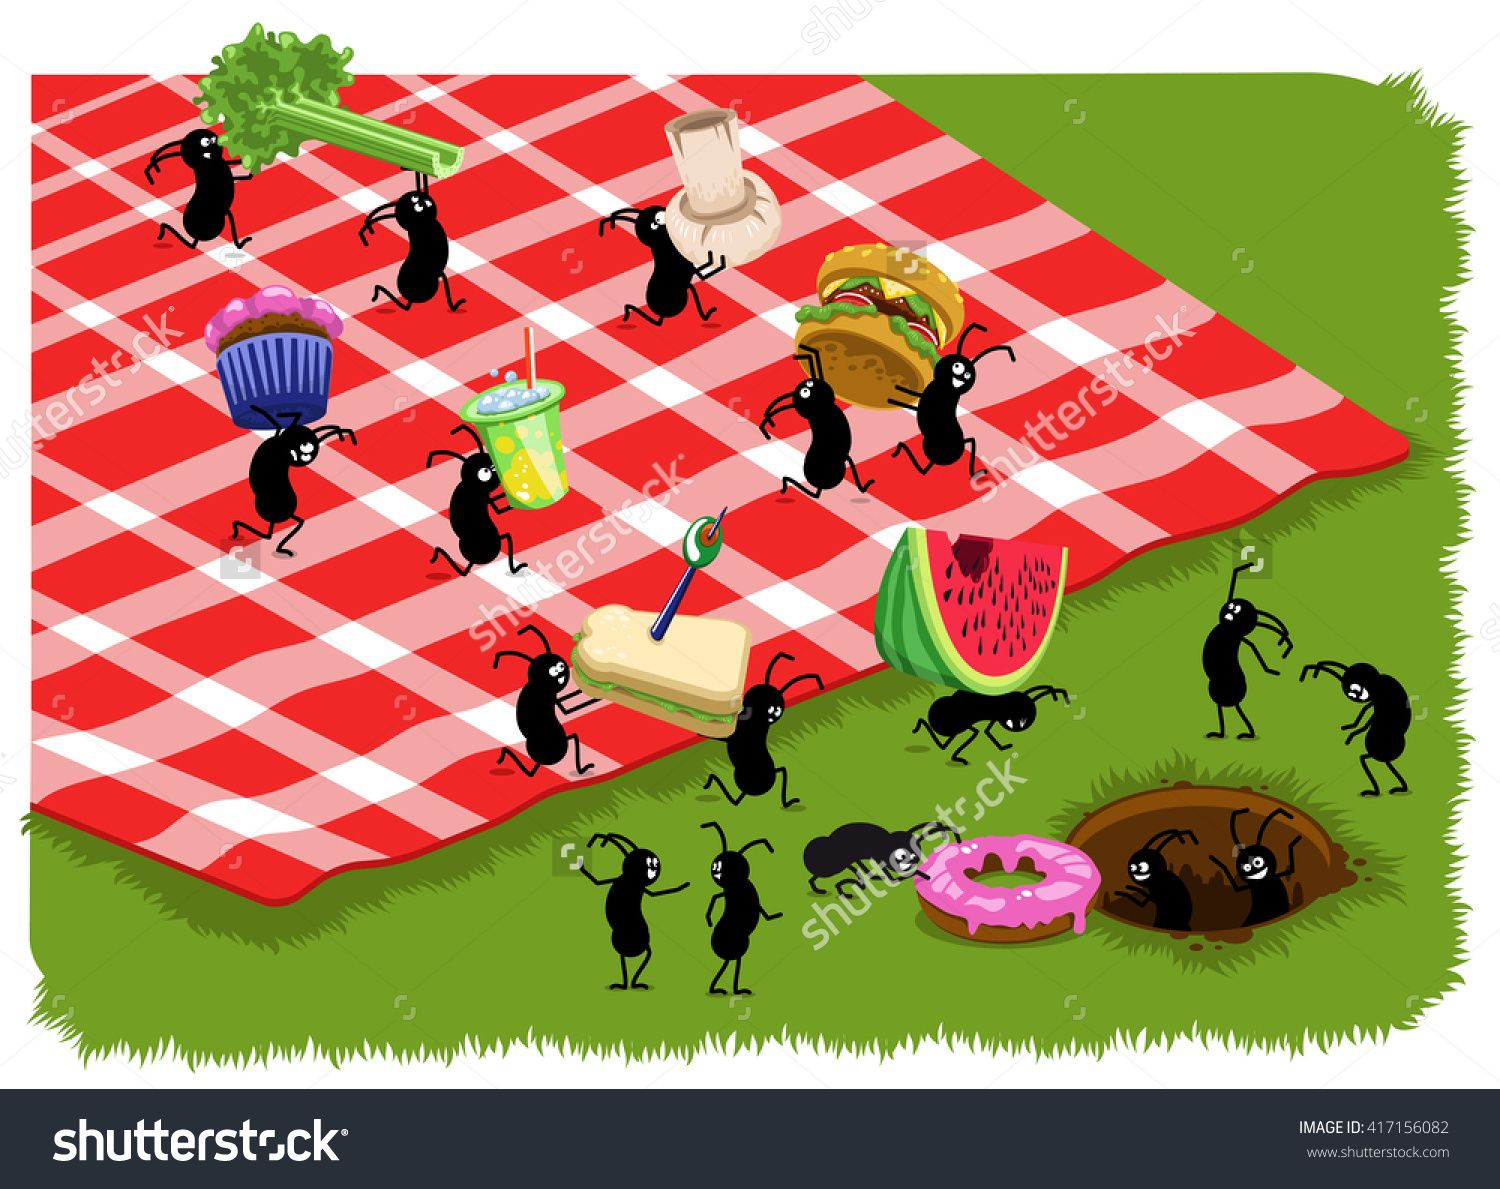 Ant clipart carry. Picnic ants food like